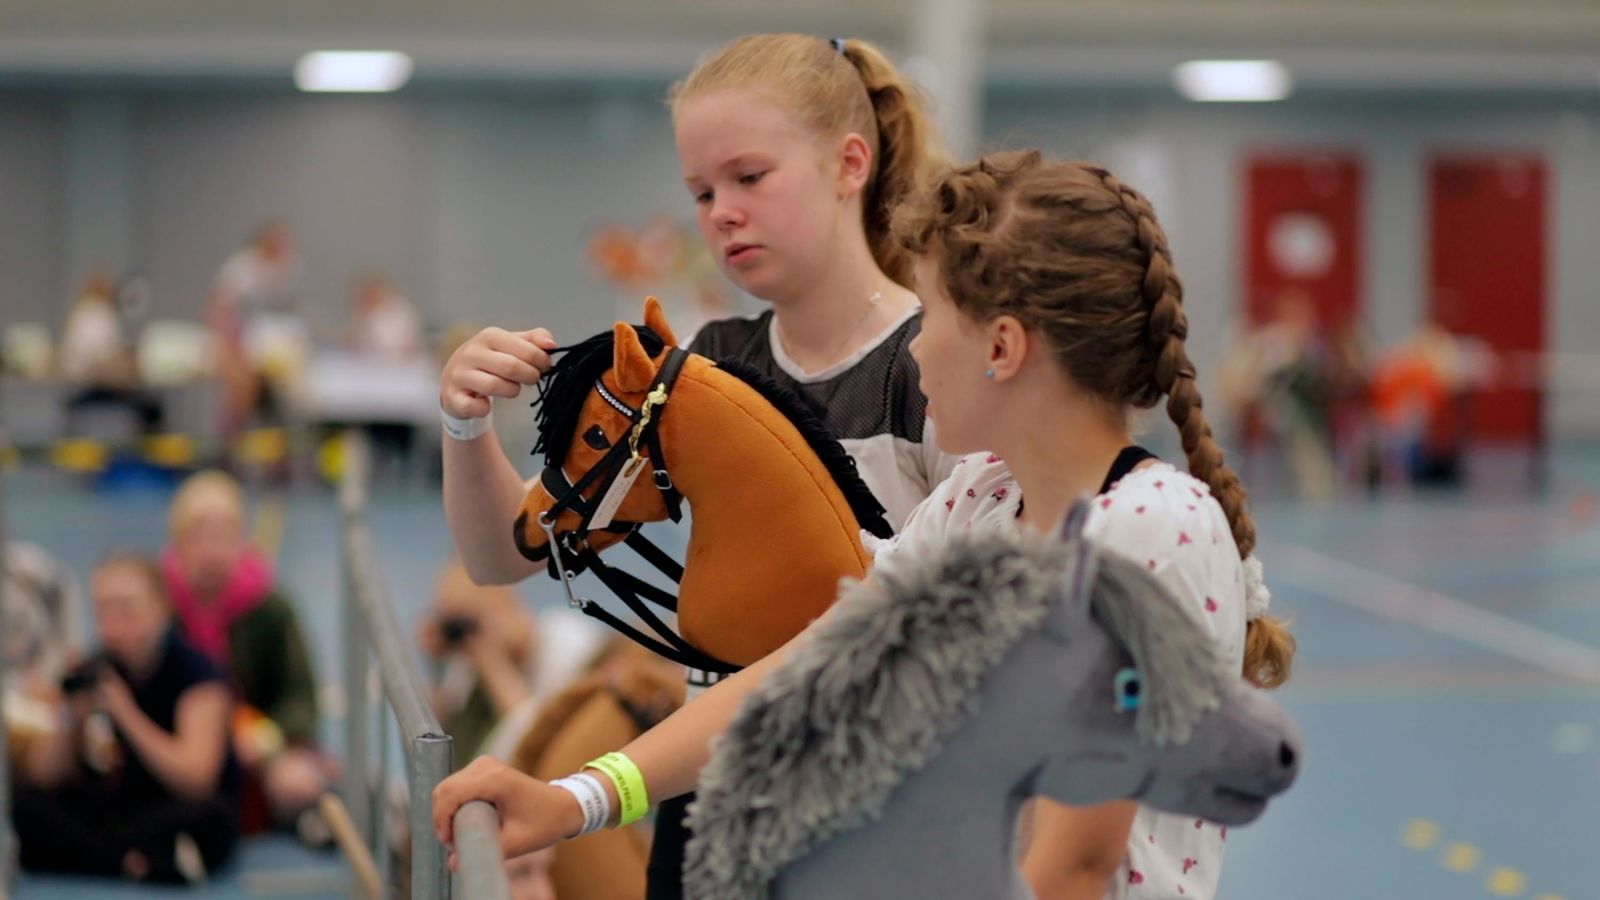 Young hobby horse competitors care for their toy horses in Seinajoki, Finland, on Saturday, June 15, 2019. More than 400 hobby horse enthusiasts took part in Finland's 8th Hobby Horse championships, competing on stylish toy horses in various events inspired by real equestrian events. (AP Photo/from APTN Video)